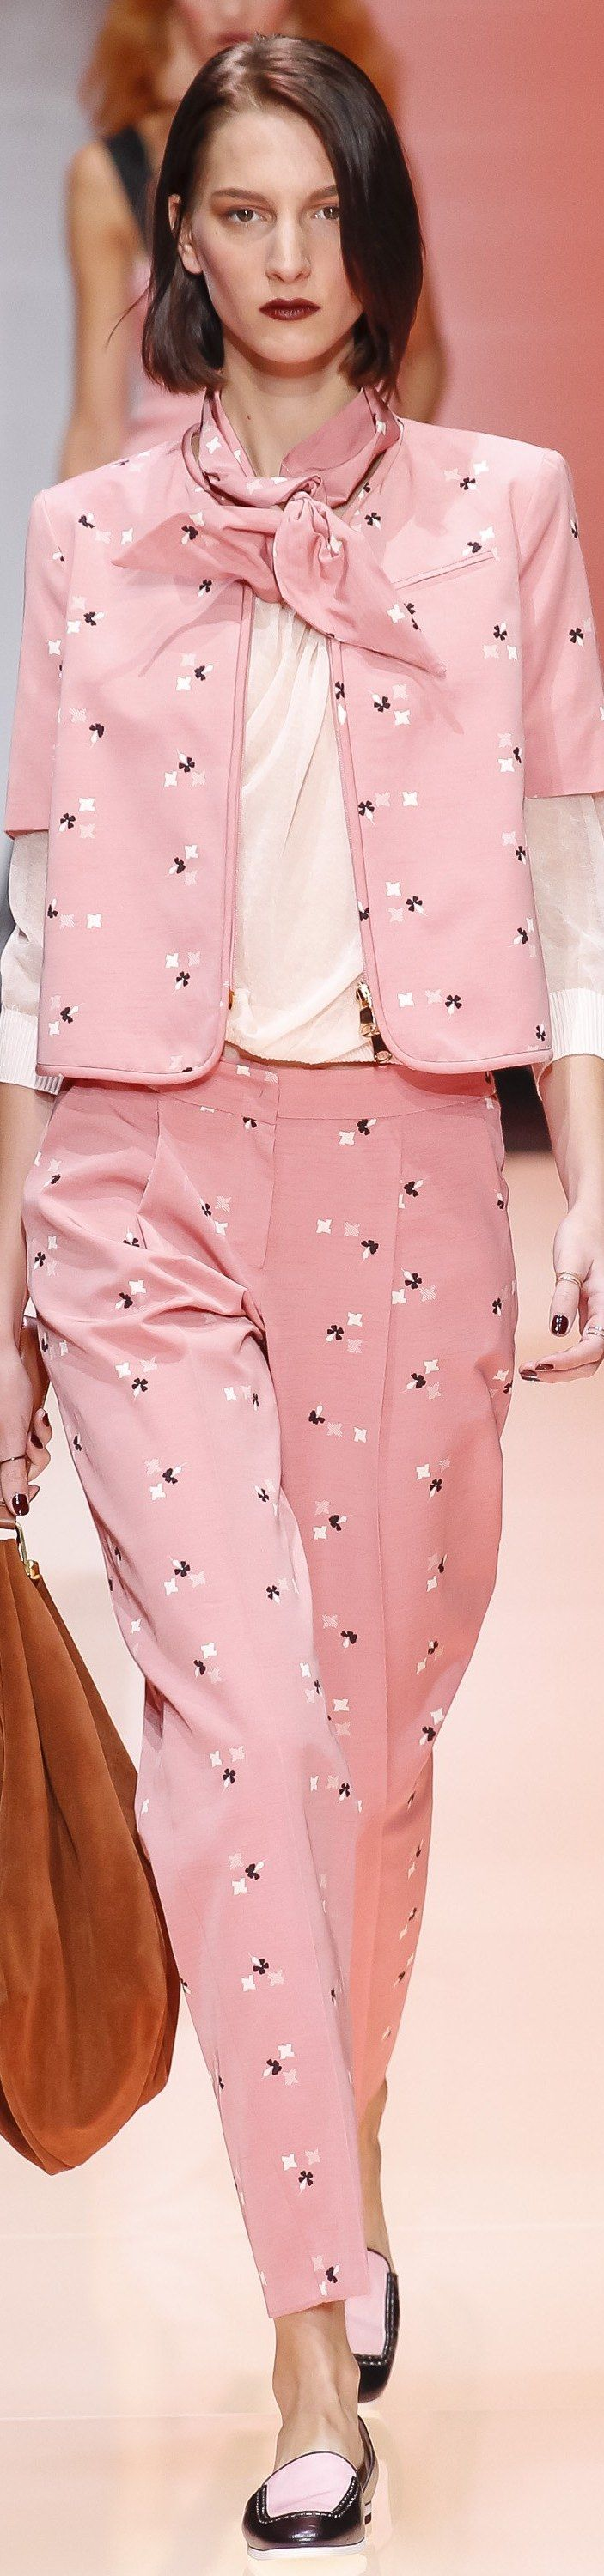 Emporio Armani - SPRING 2016 READY-TO-WEAR